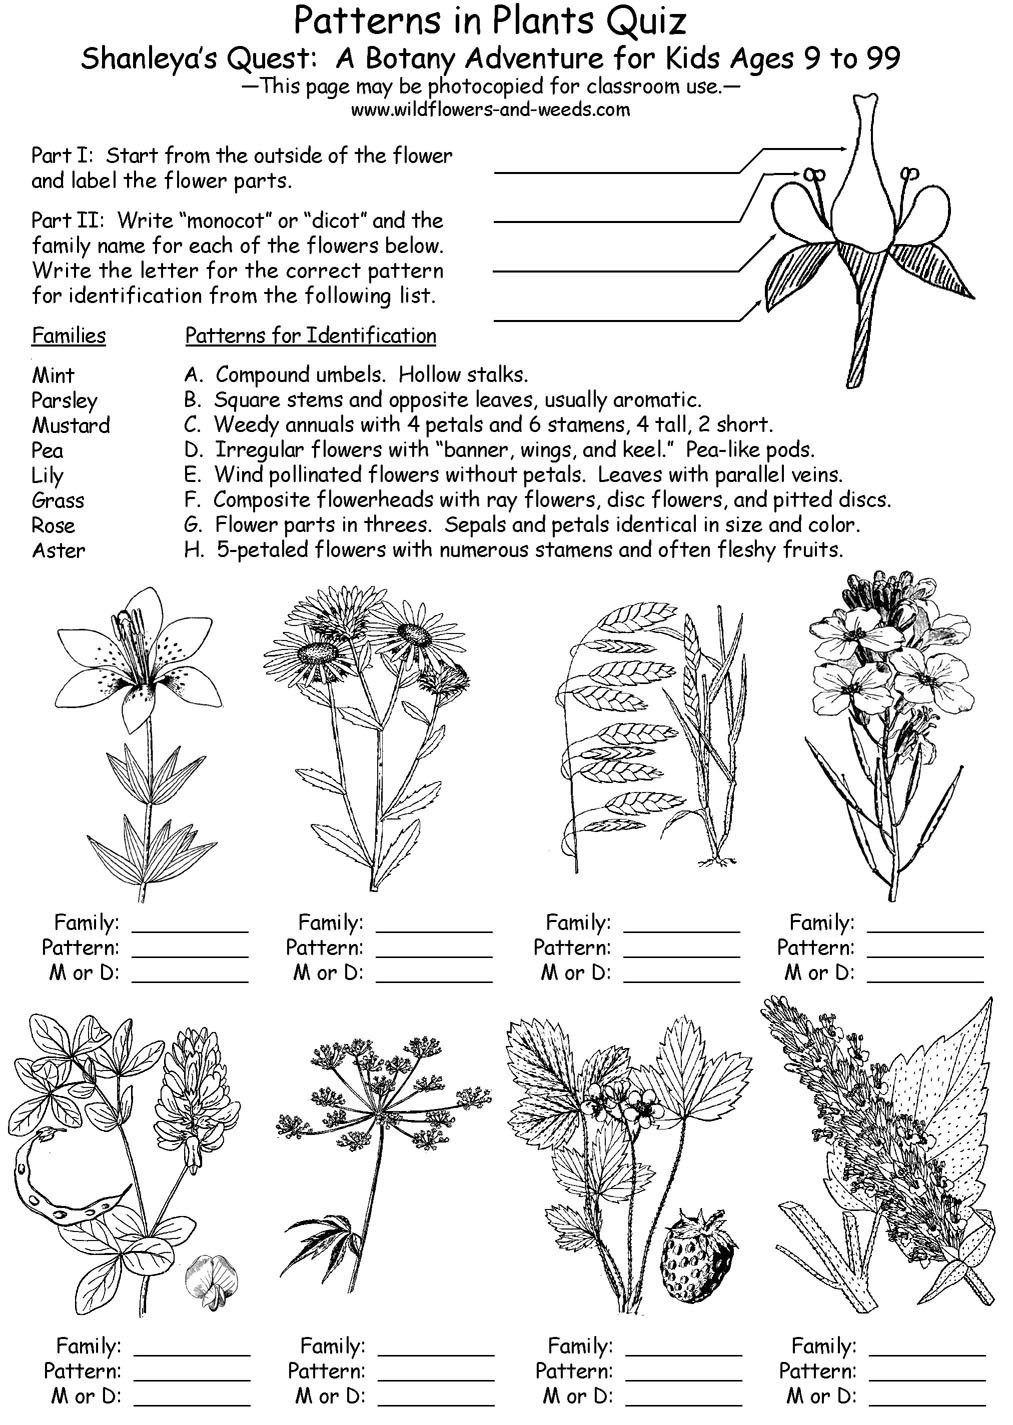 Free Printable Biology Worksheets Lesson Plans Science Biology Botany Patterns In Plants with